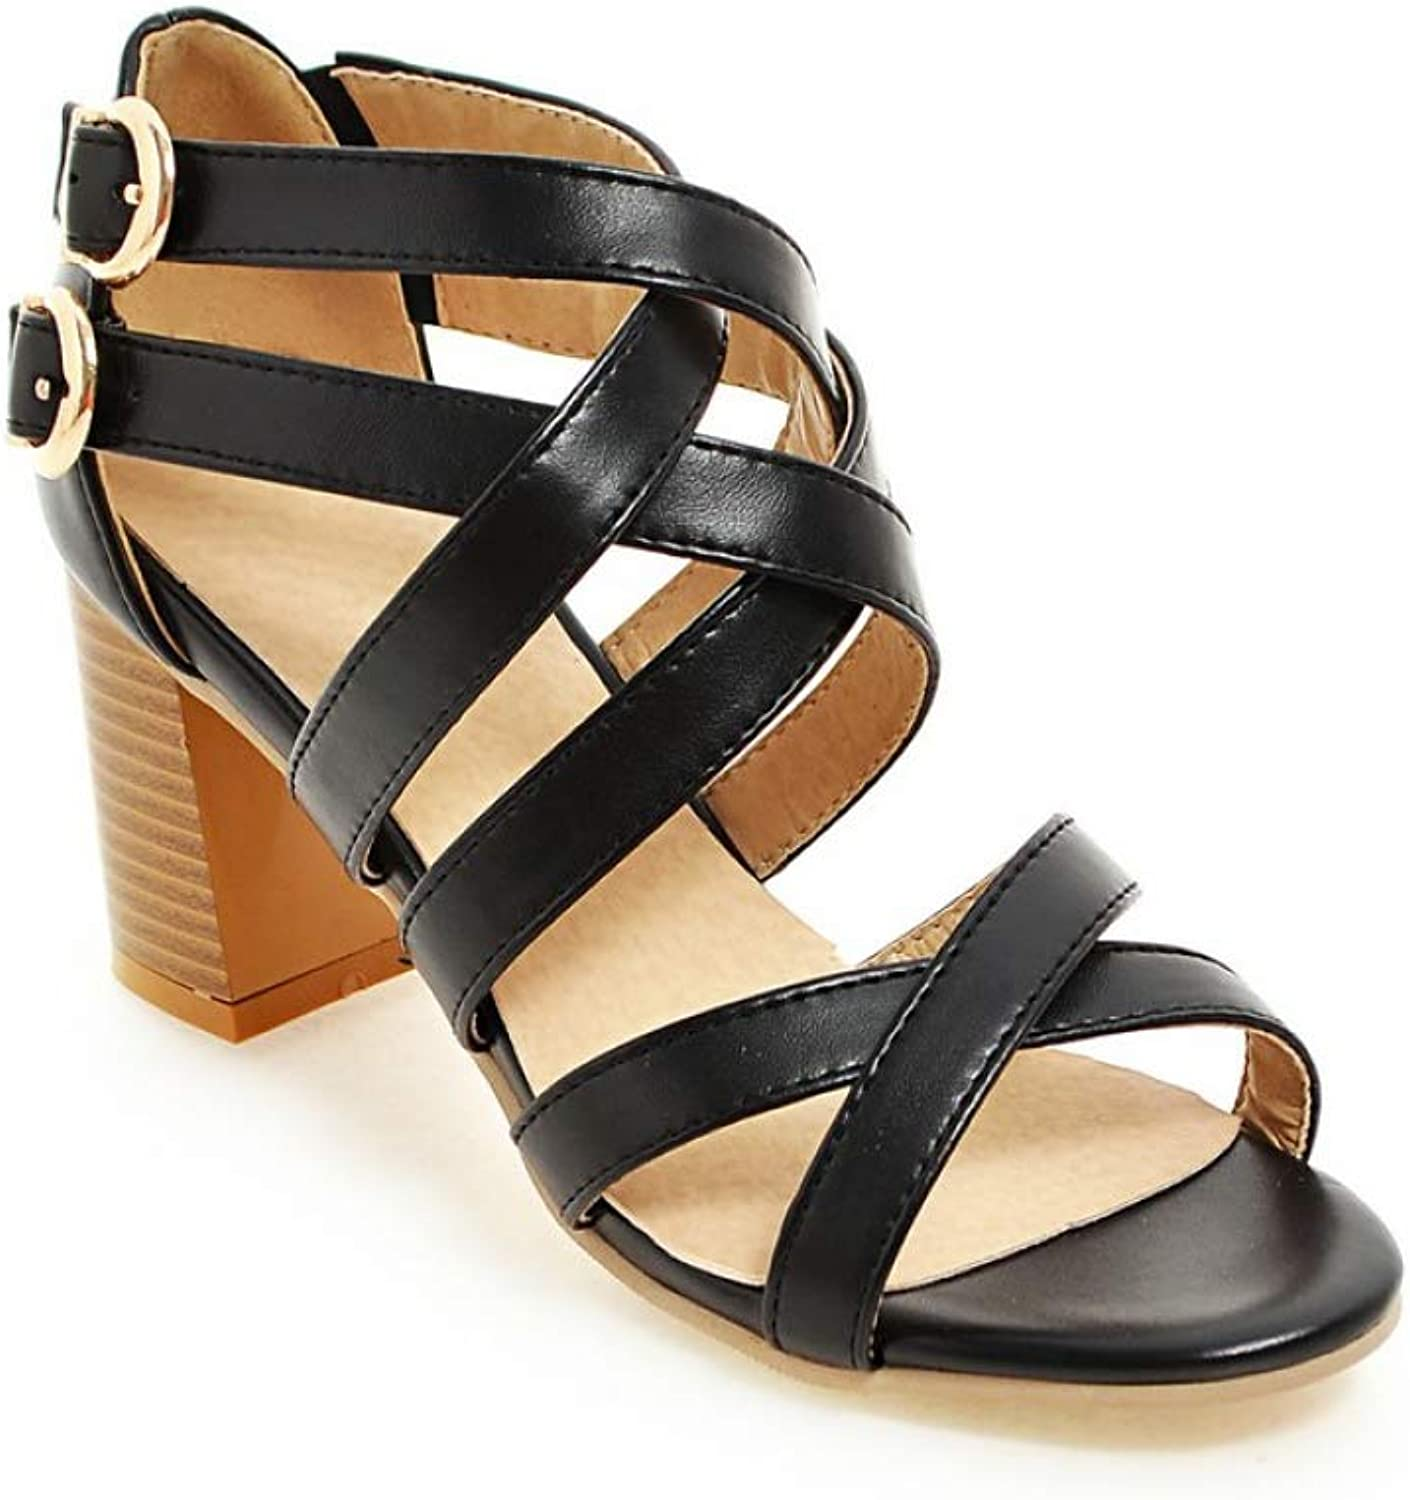 T-JULY Women Gladiator Sandals Rome Style High Heels shoes Square Heel Sandals Woman